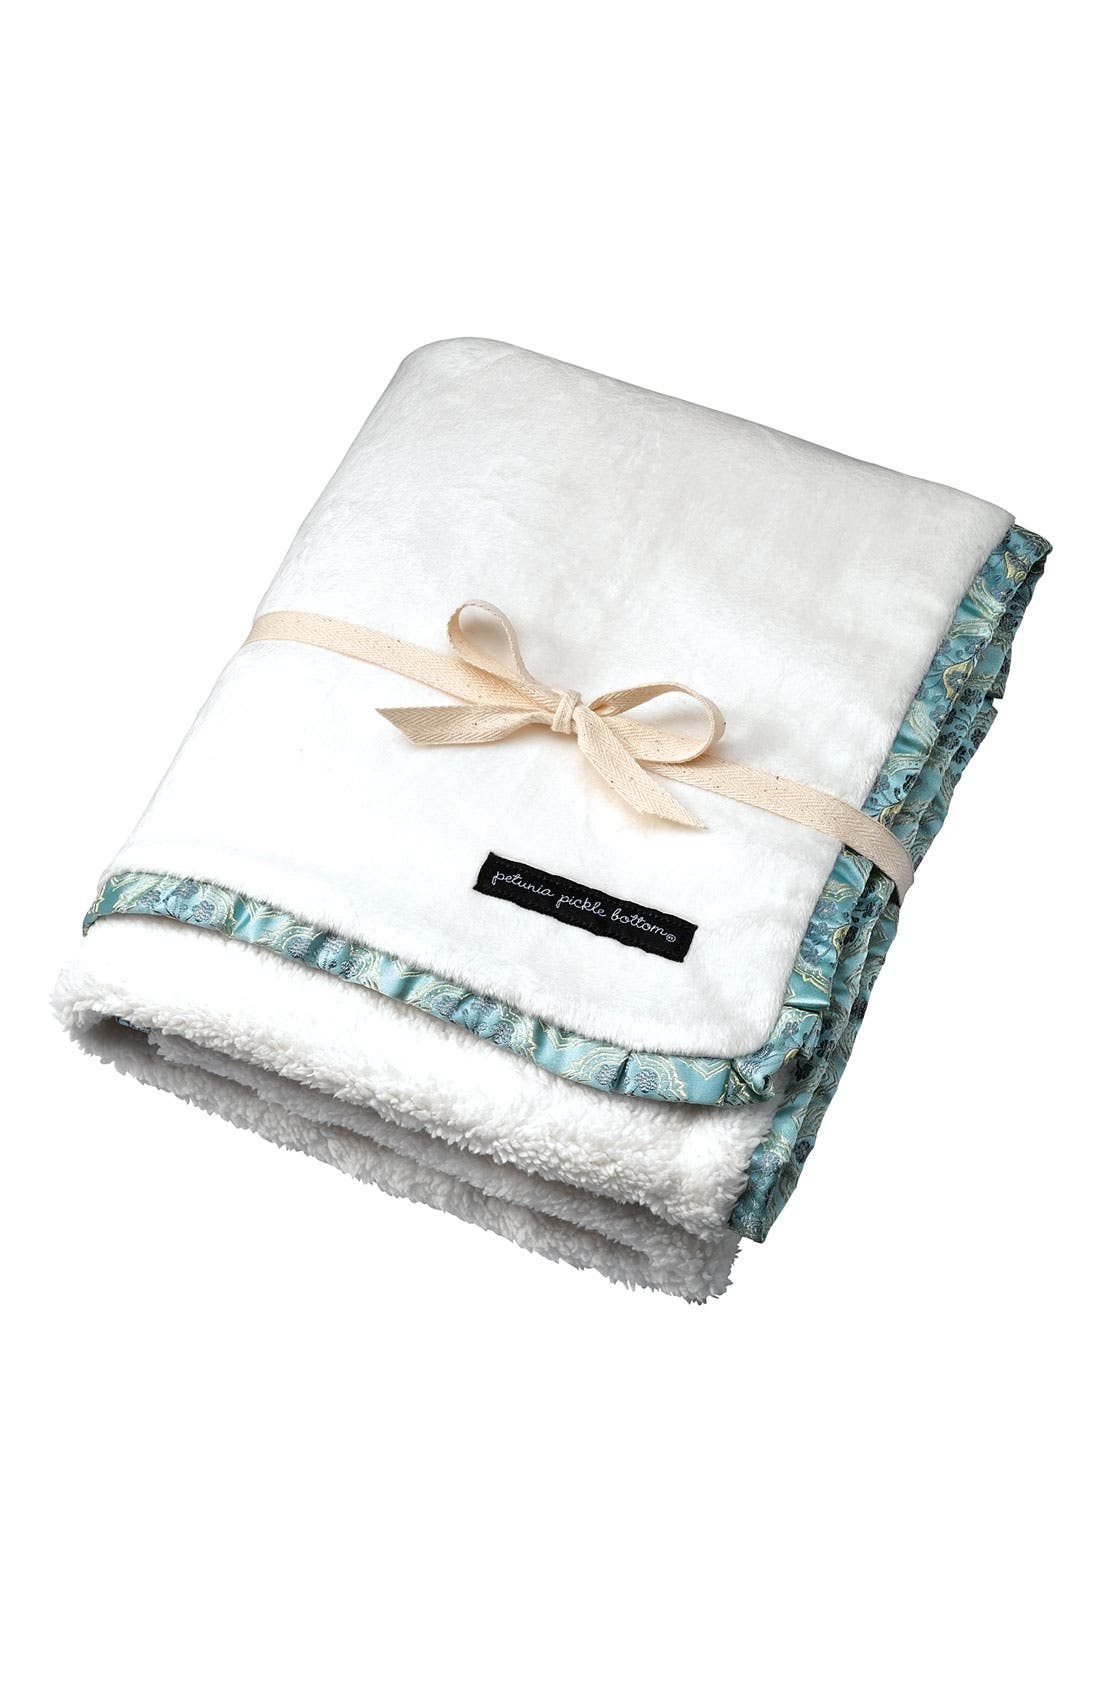 Alternate Image 1 Selected - Petunia Pickle Bottom Brocade Trim Receiving Blanket